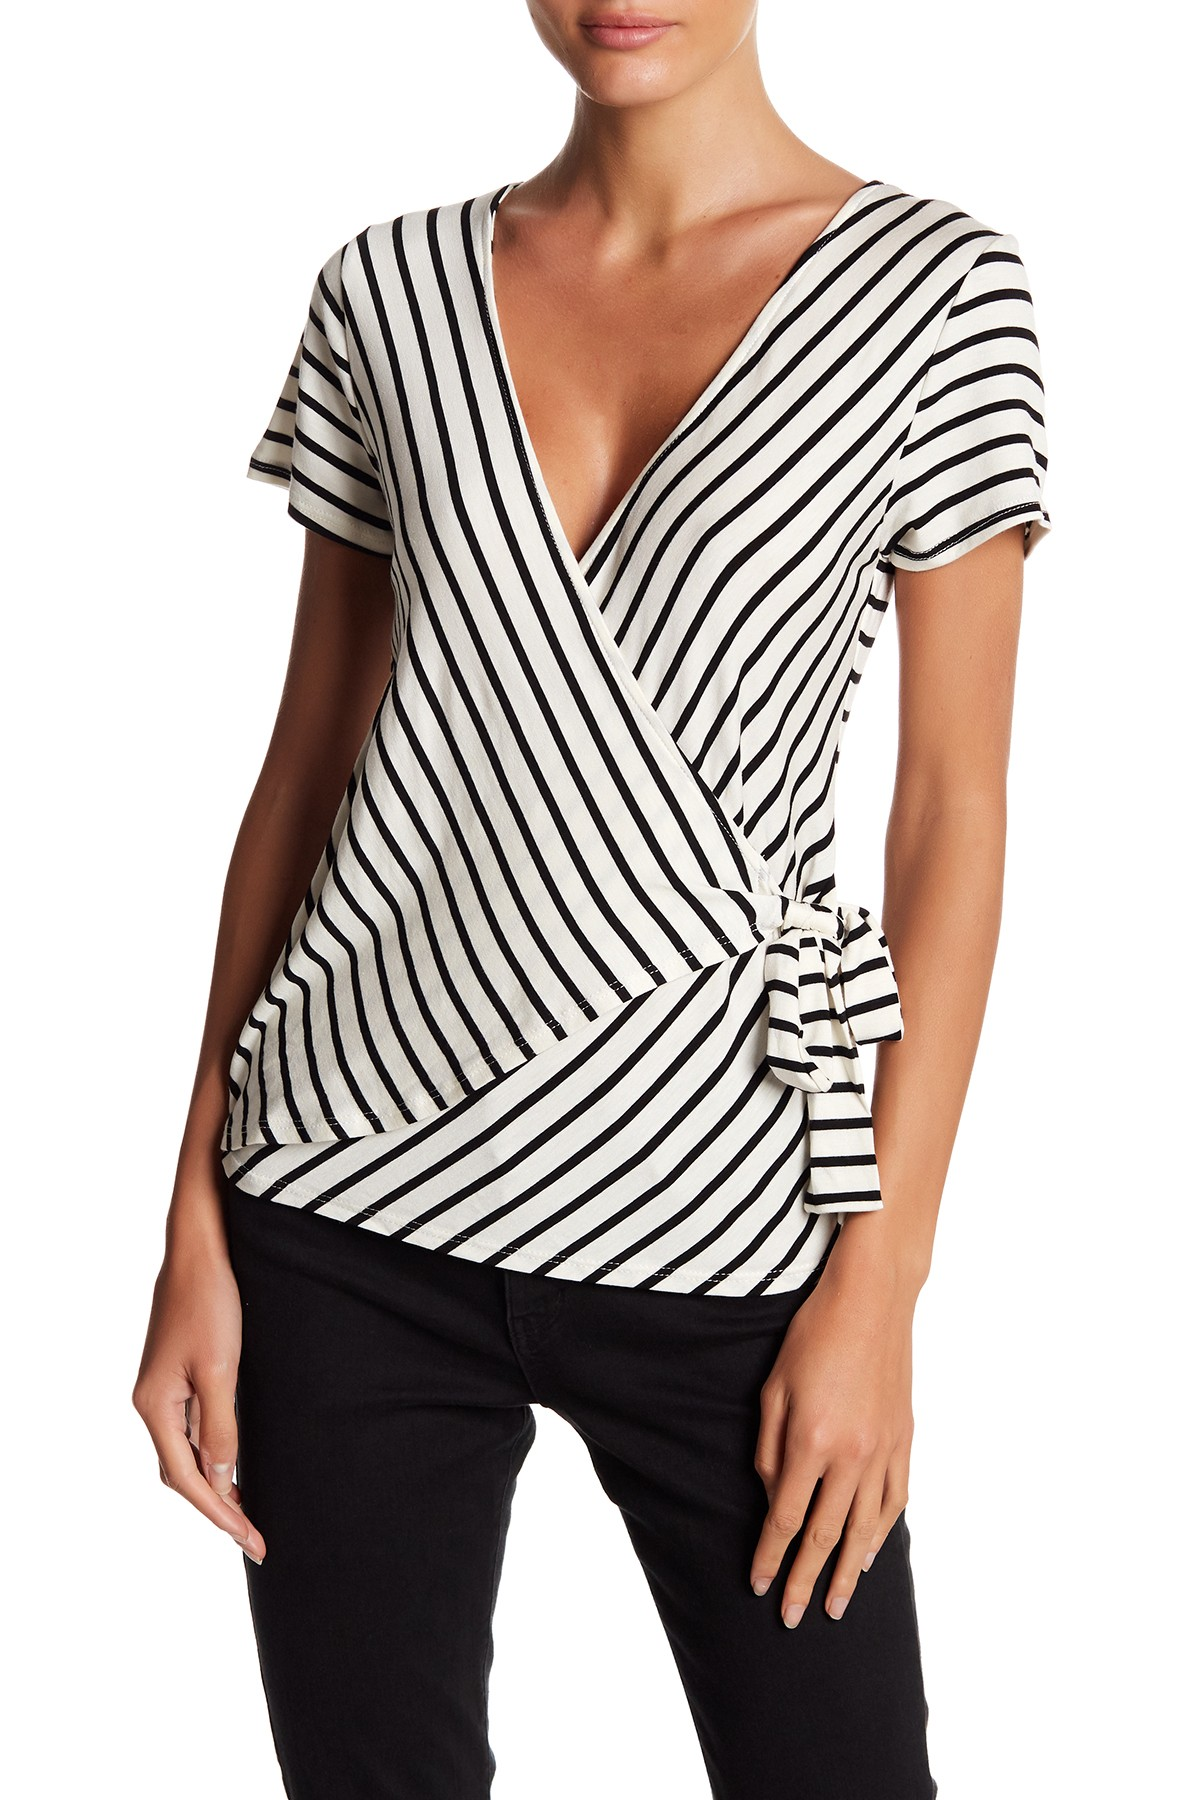 6aaed5c66b067 Short Sleeve Striped Wrap Top by Socialite on  nordstrom rack